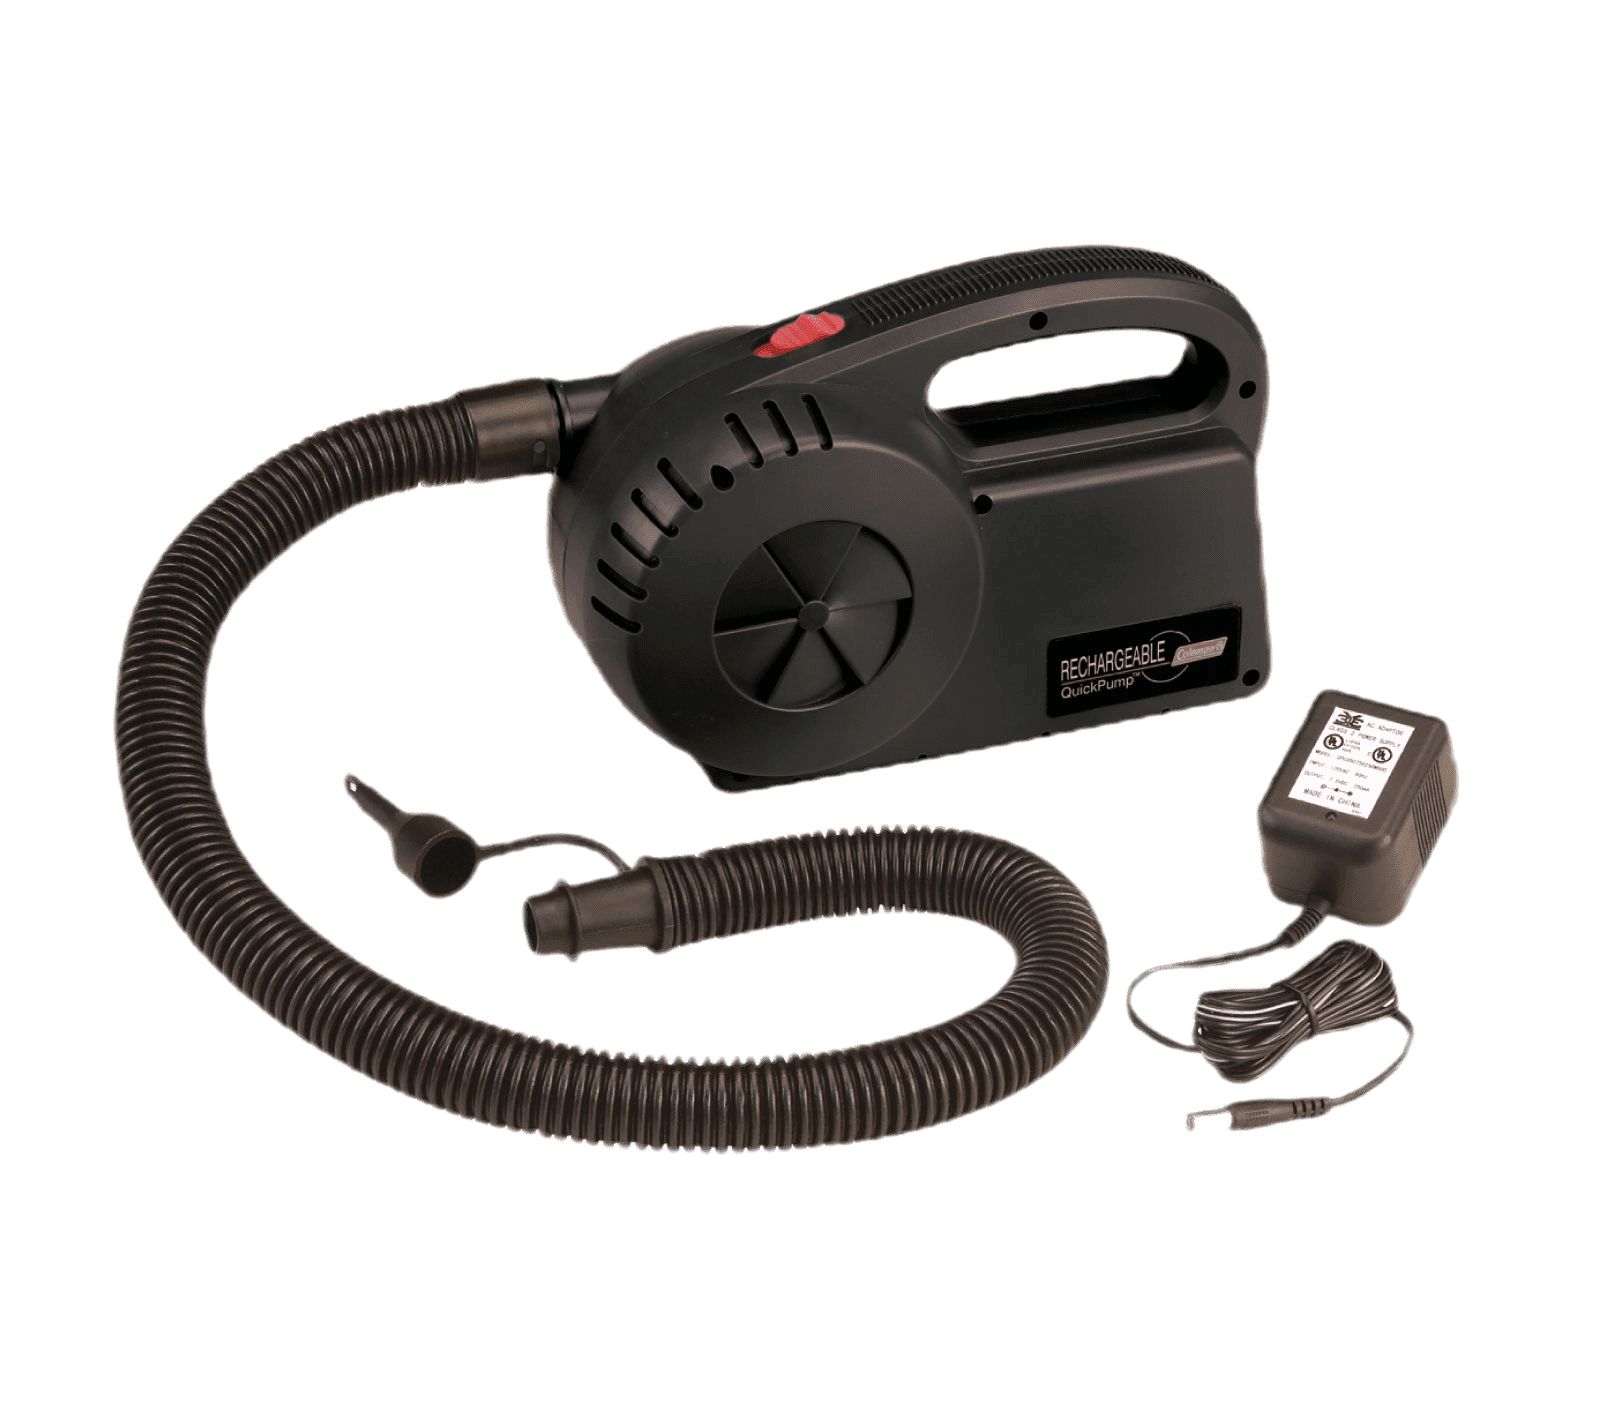 Rechargeable quickpump 230v